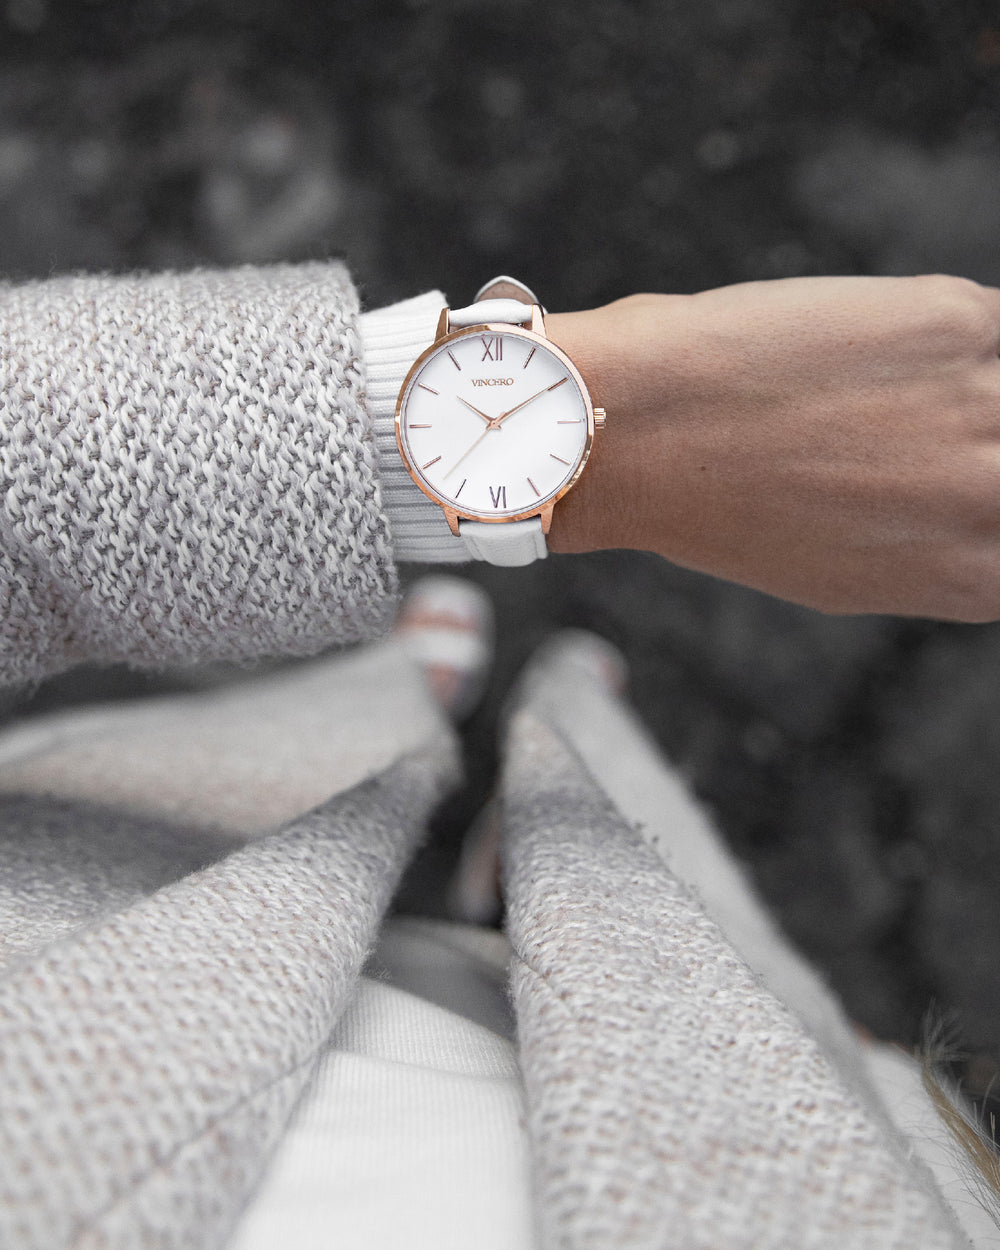 Eros White Italian Leather Strap Marble White Watch Face Rose Gold Case Clasp Rose Gold Accents